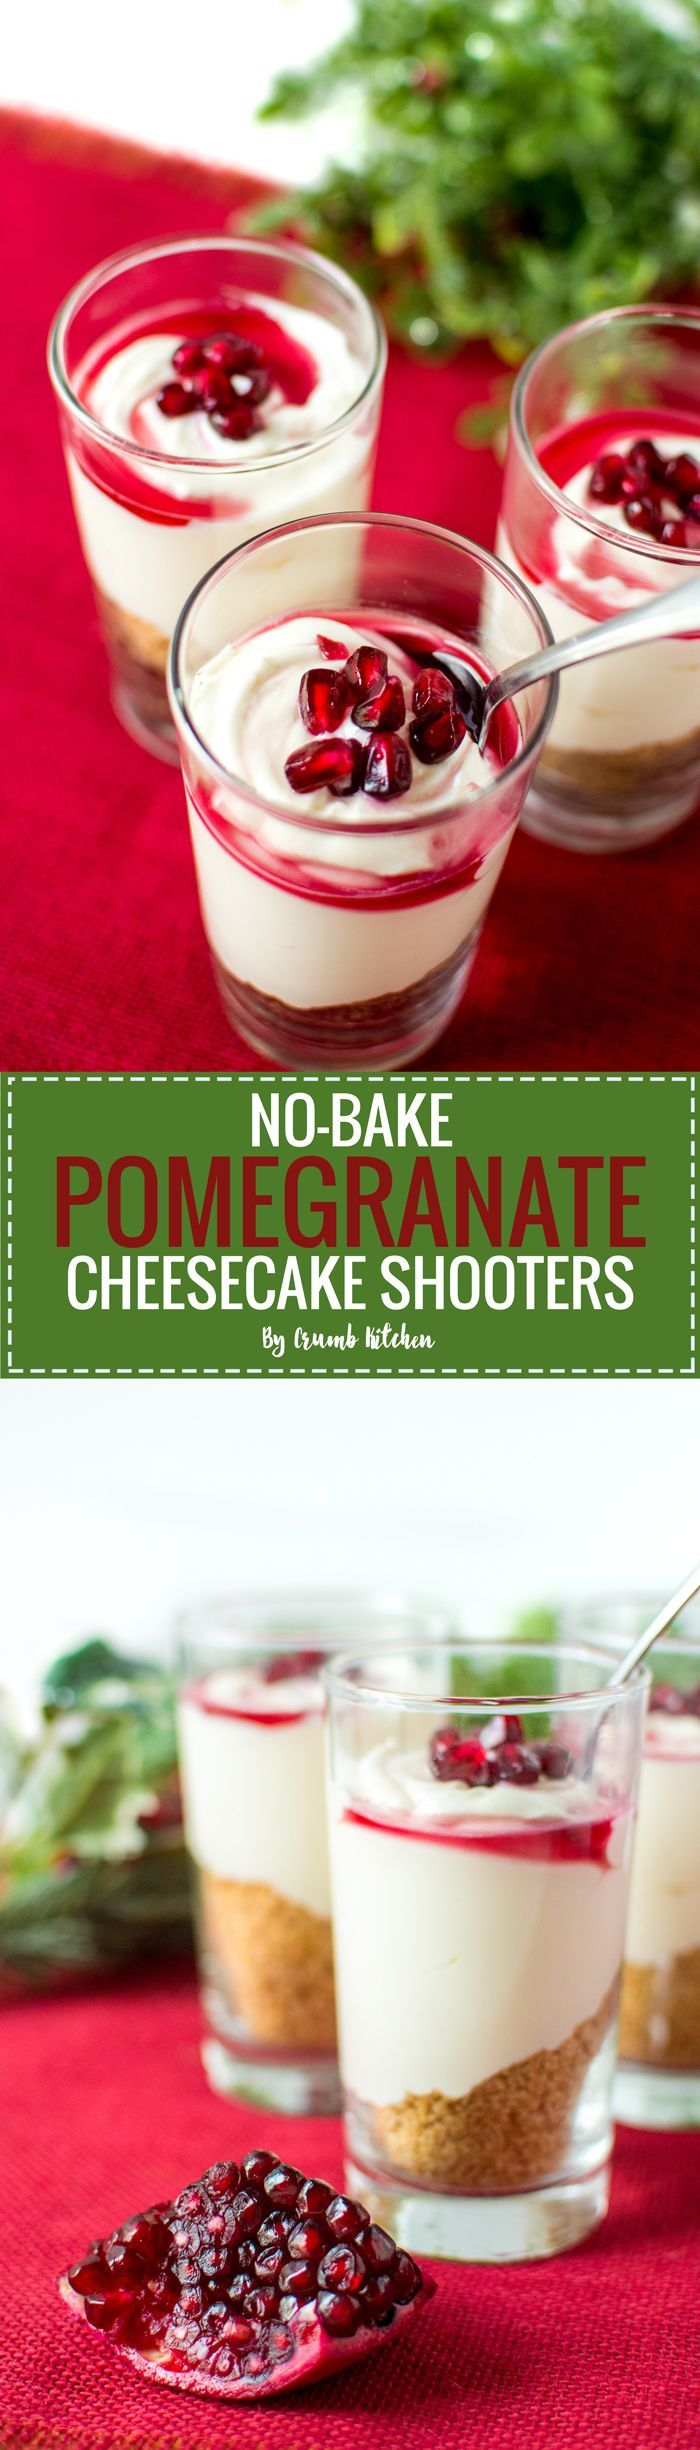 Thrown together in only a few minutes, these no-bake pomegranate cheesecake shooters are an entertaining-friendly way to serve creamy cheesecake goodness. | http://crumbkitchen.com